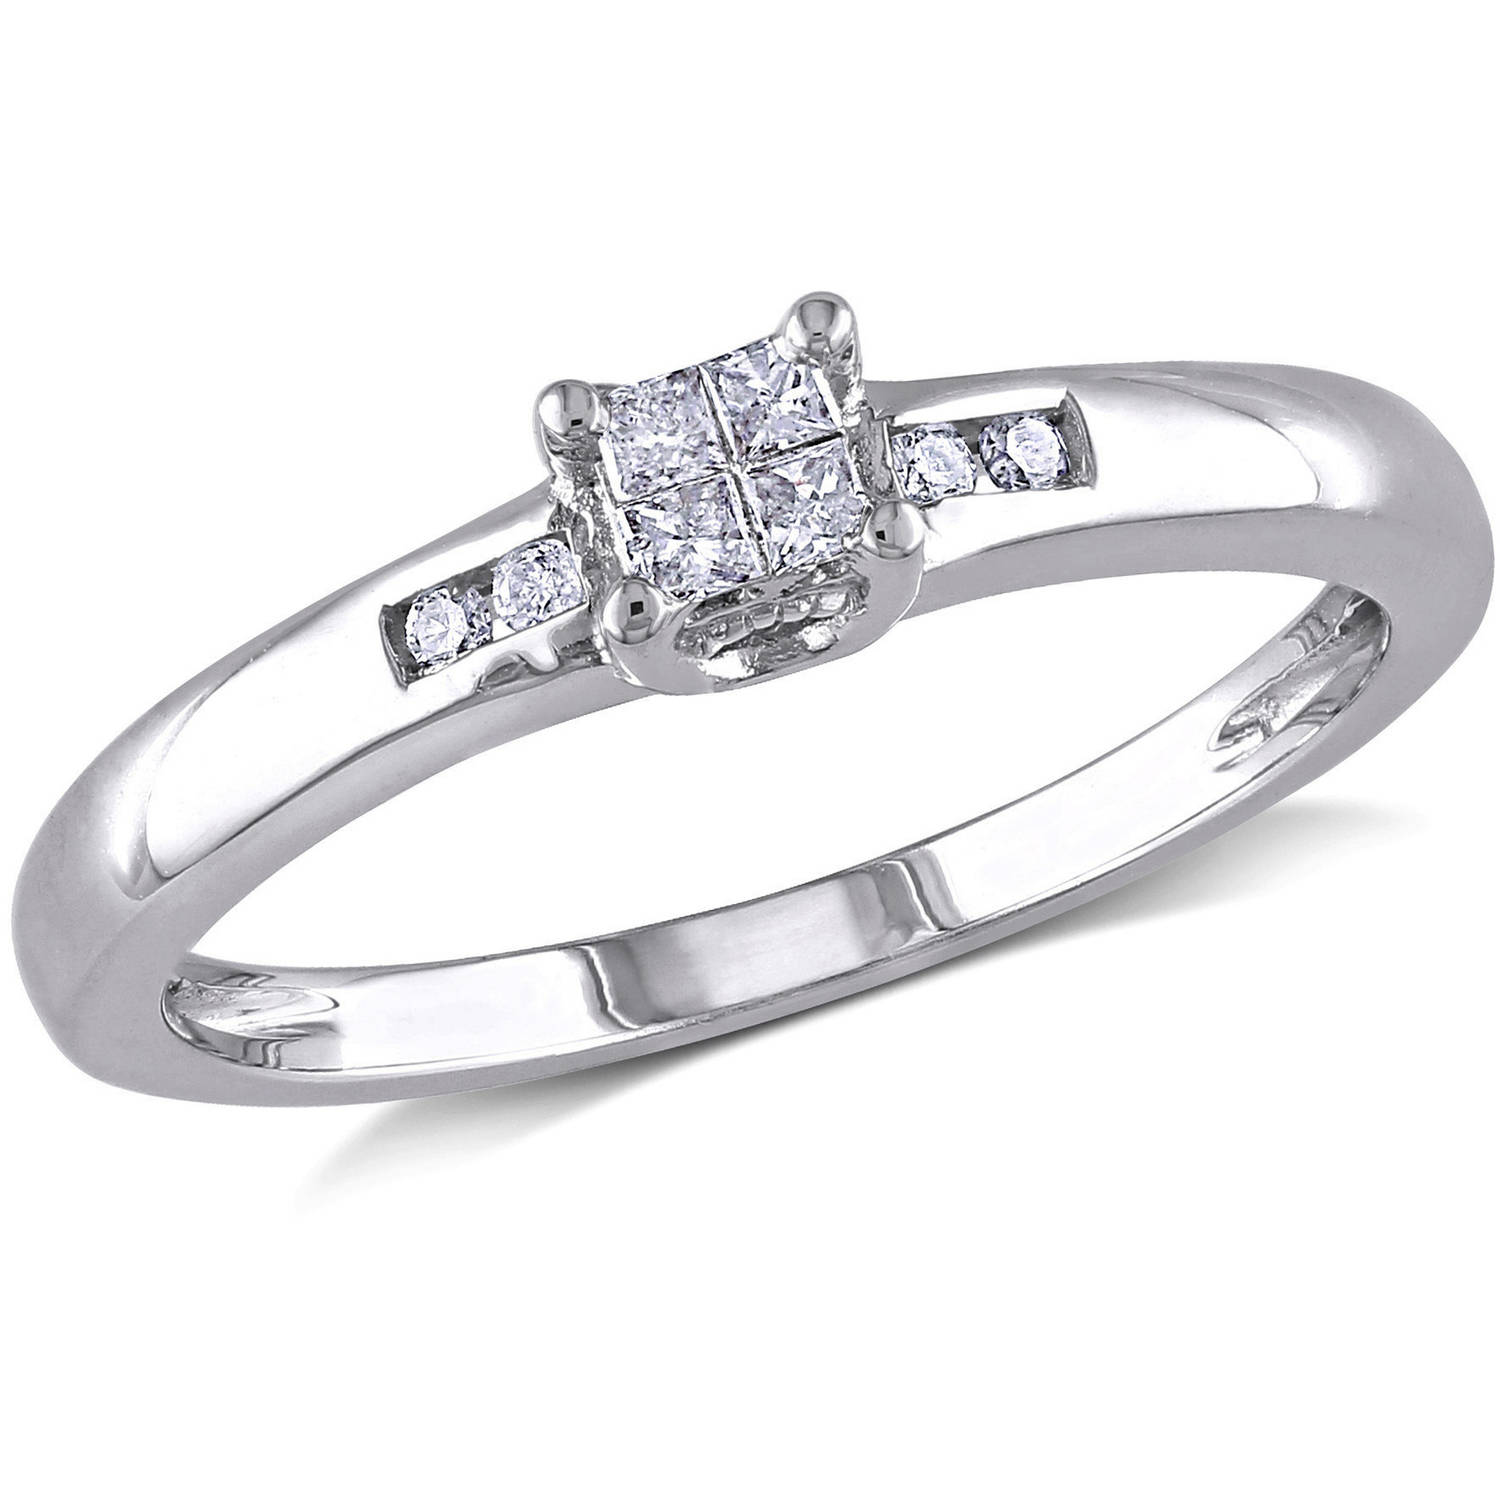 Miabella 1 8 Carat T W Princess and Round Cut Diamond Sterling